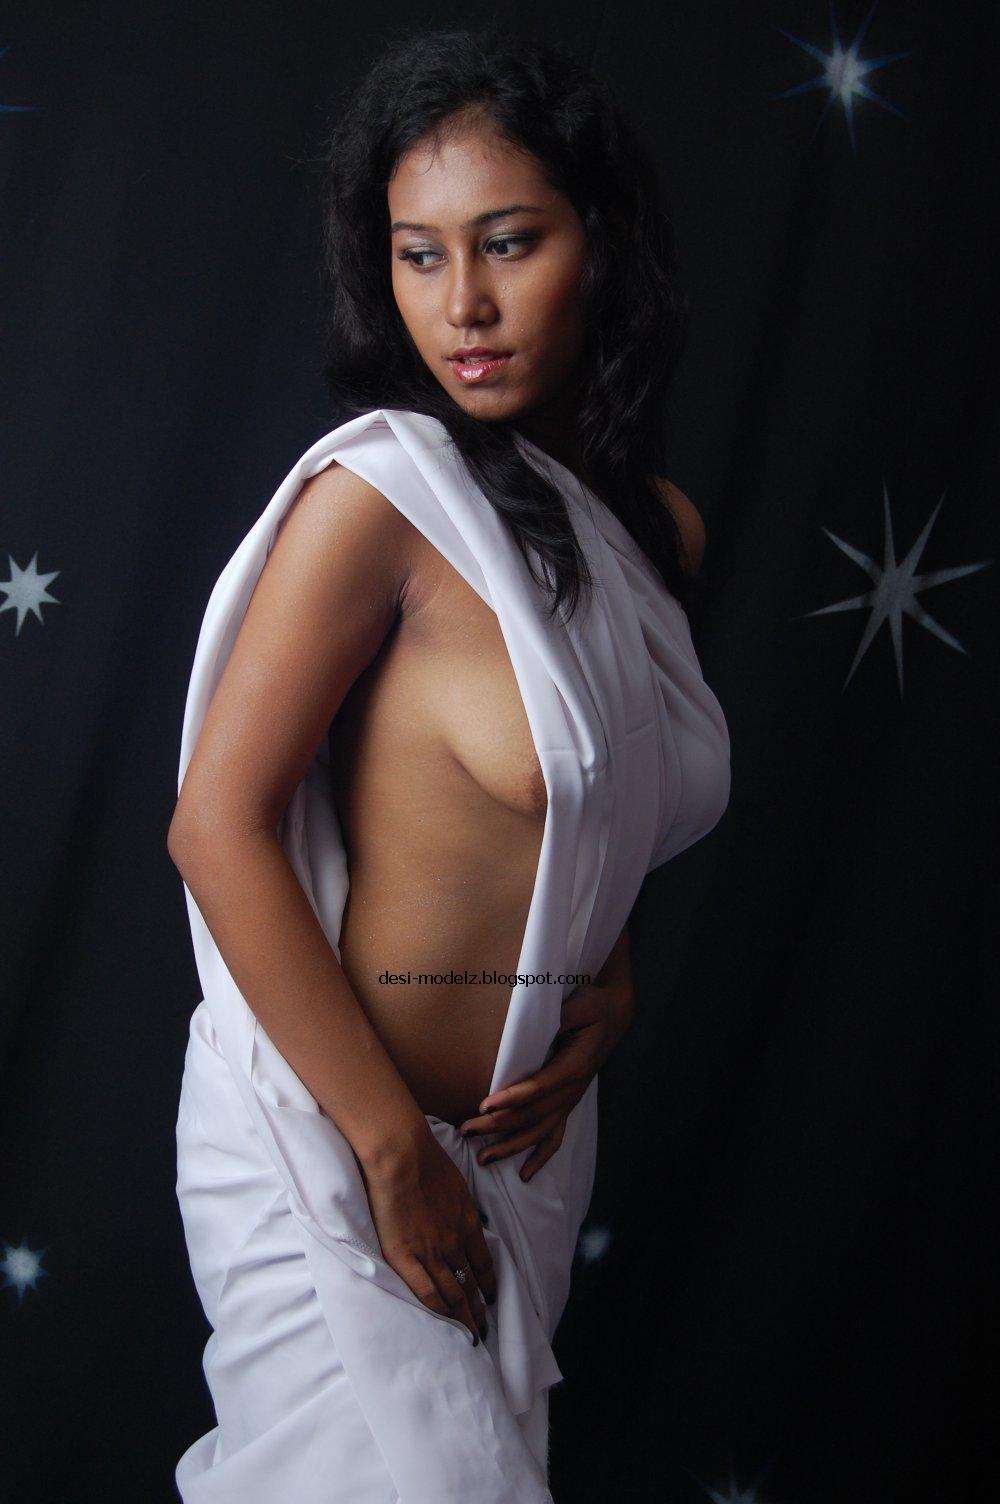 photo desi model topless